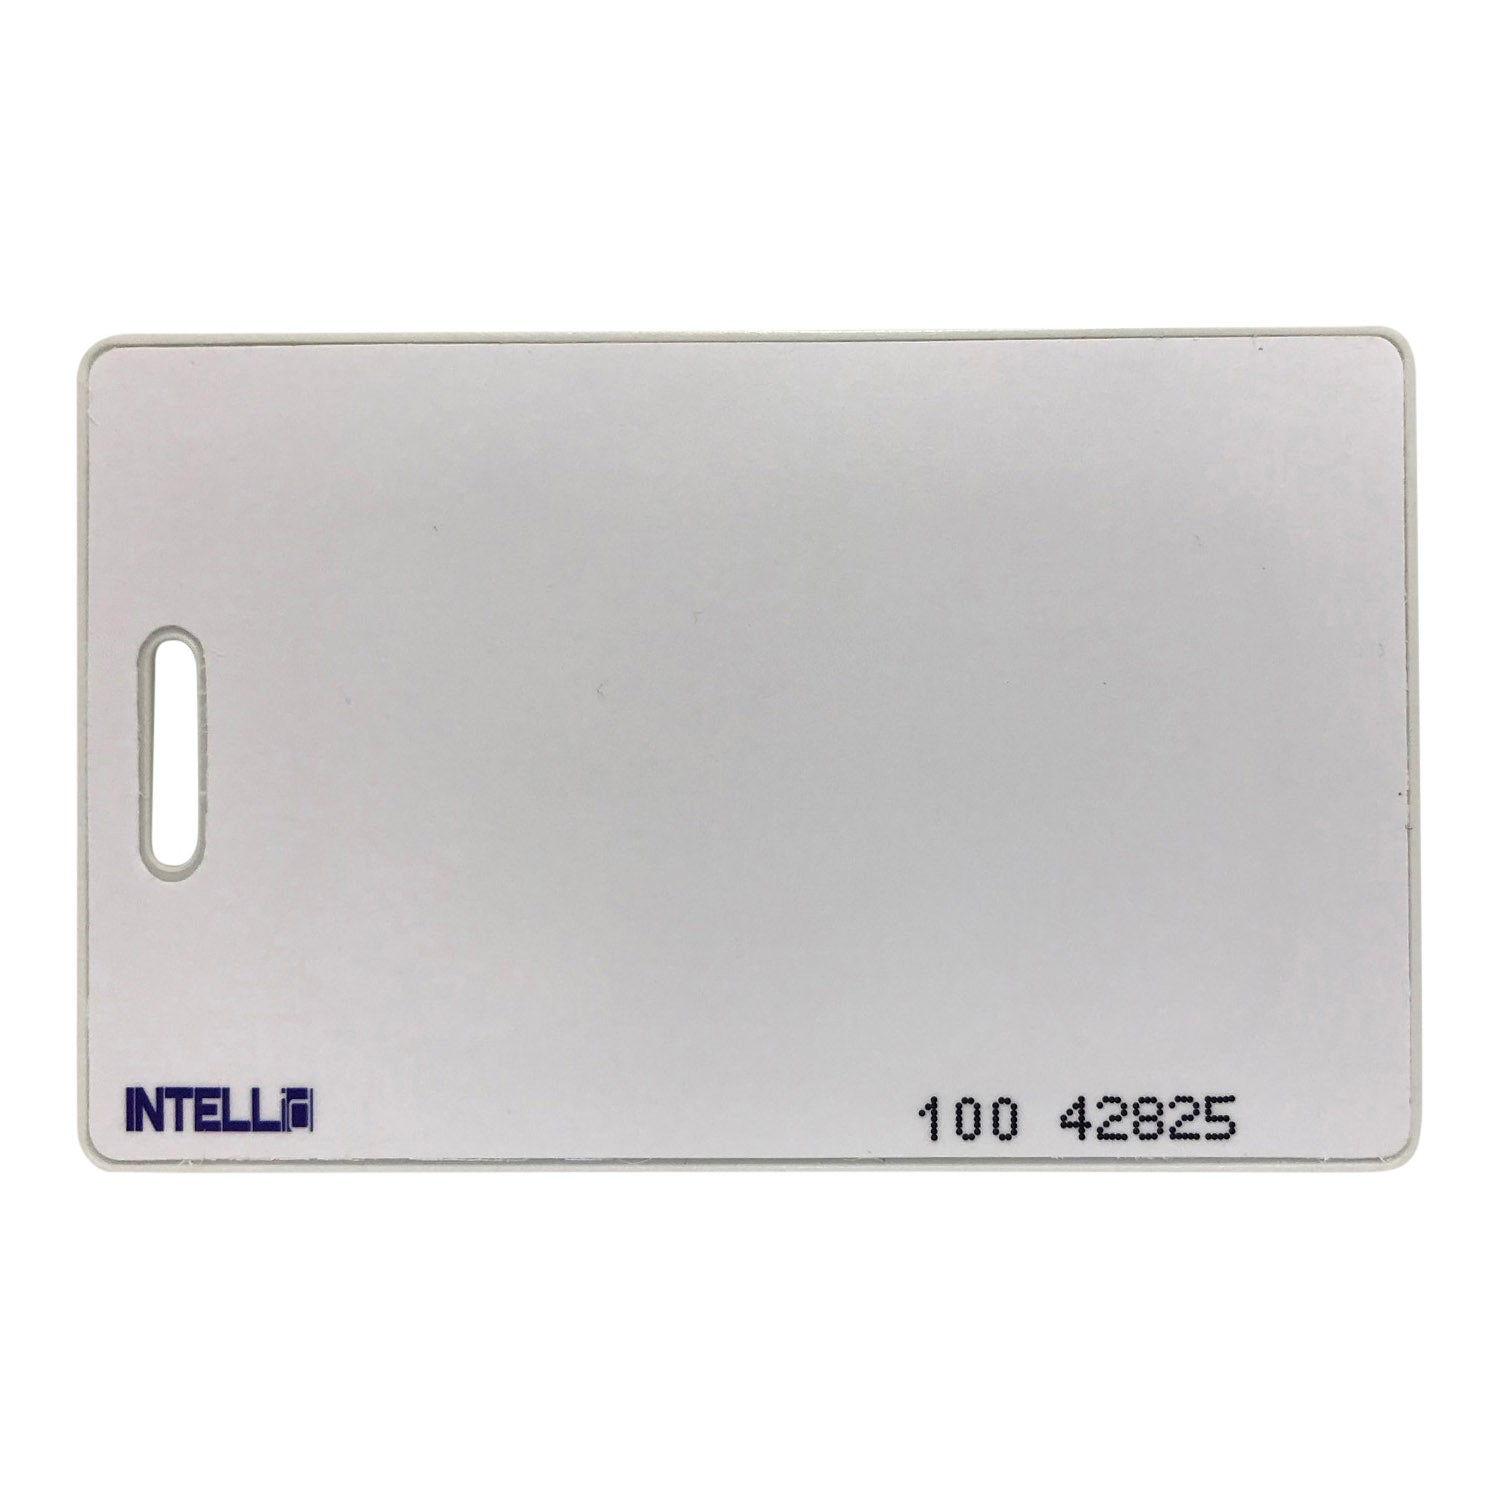 200 pcs 26 Bit Proximity Clamshell Weigand Proximity Cards Tax Exempt